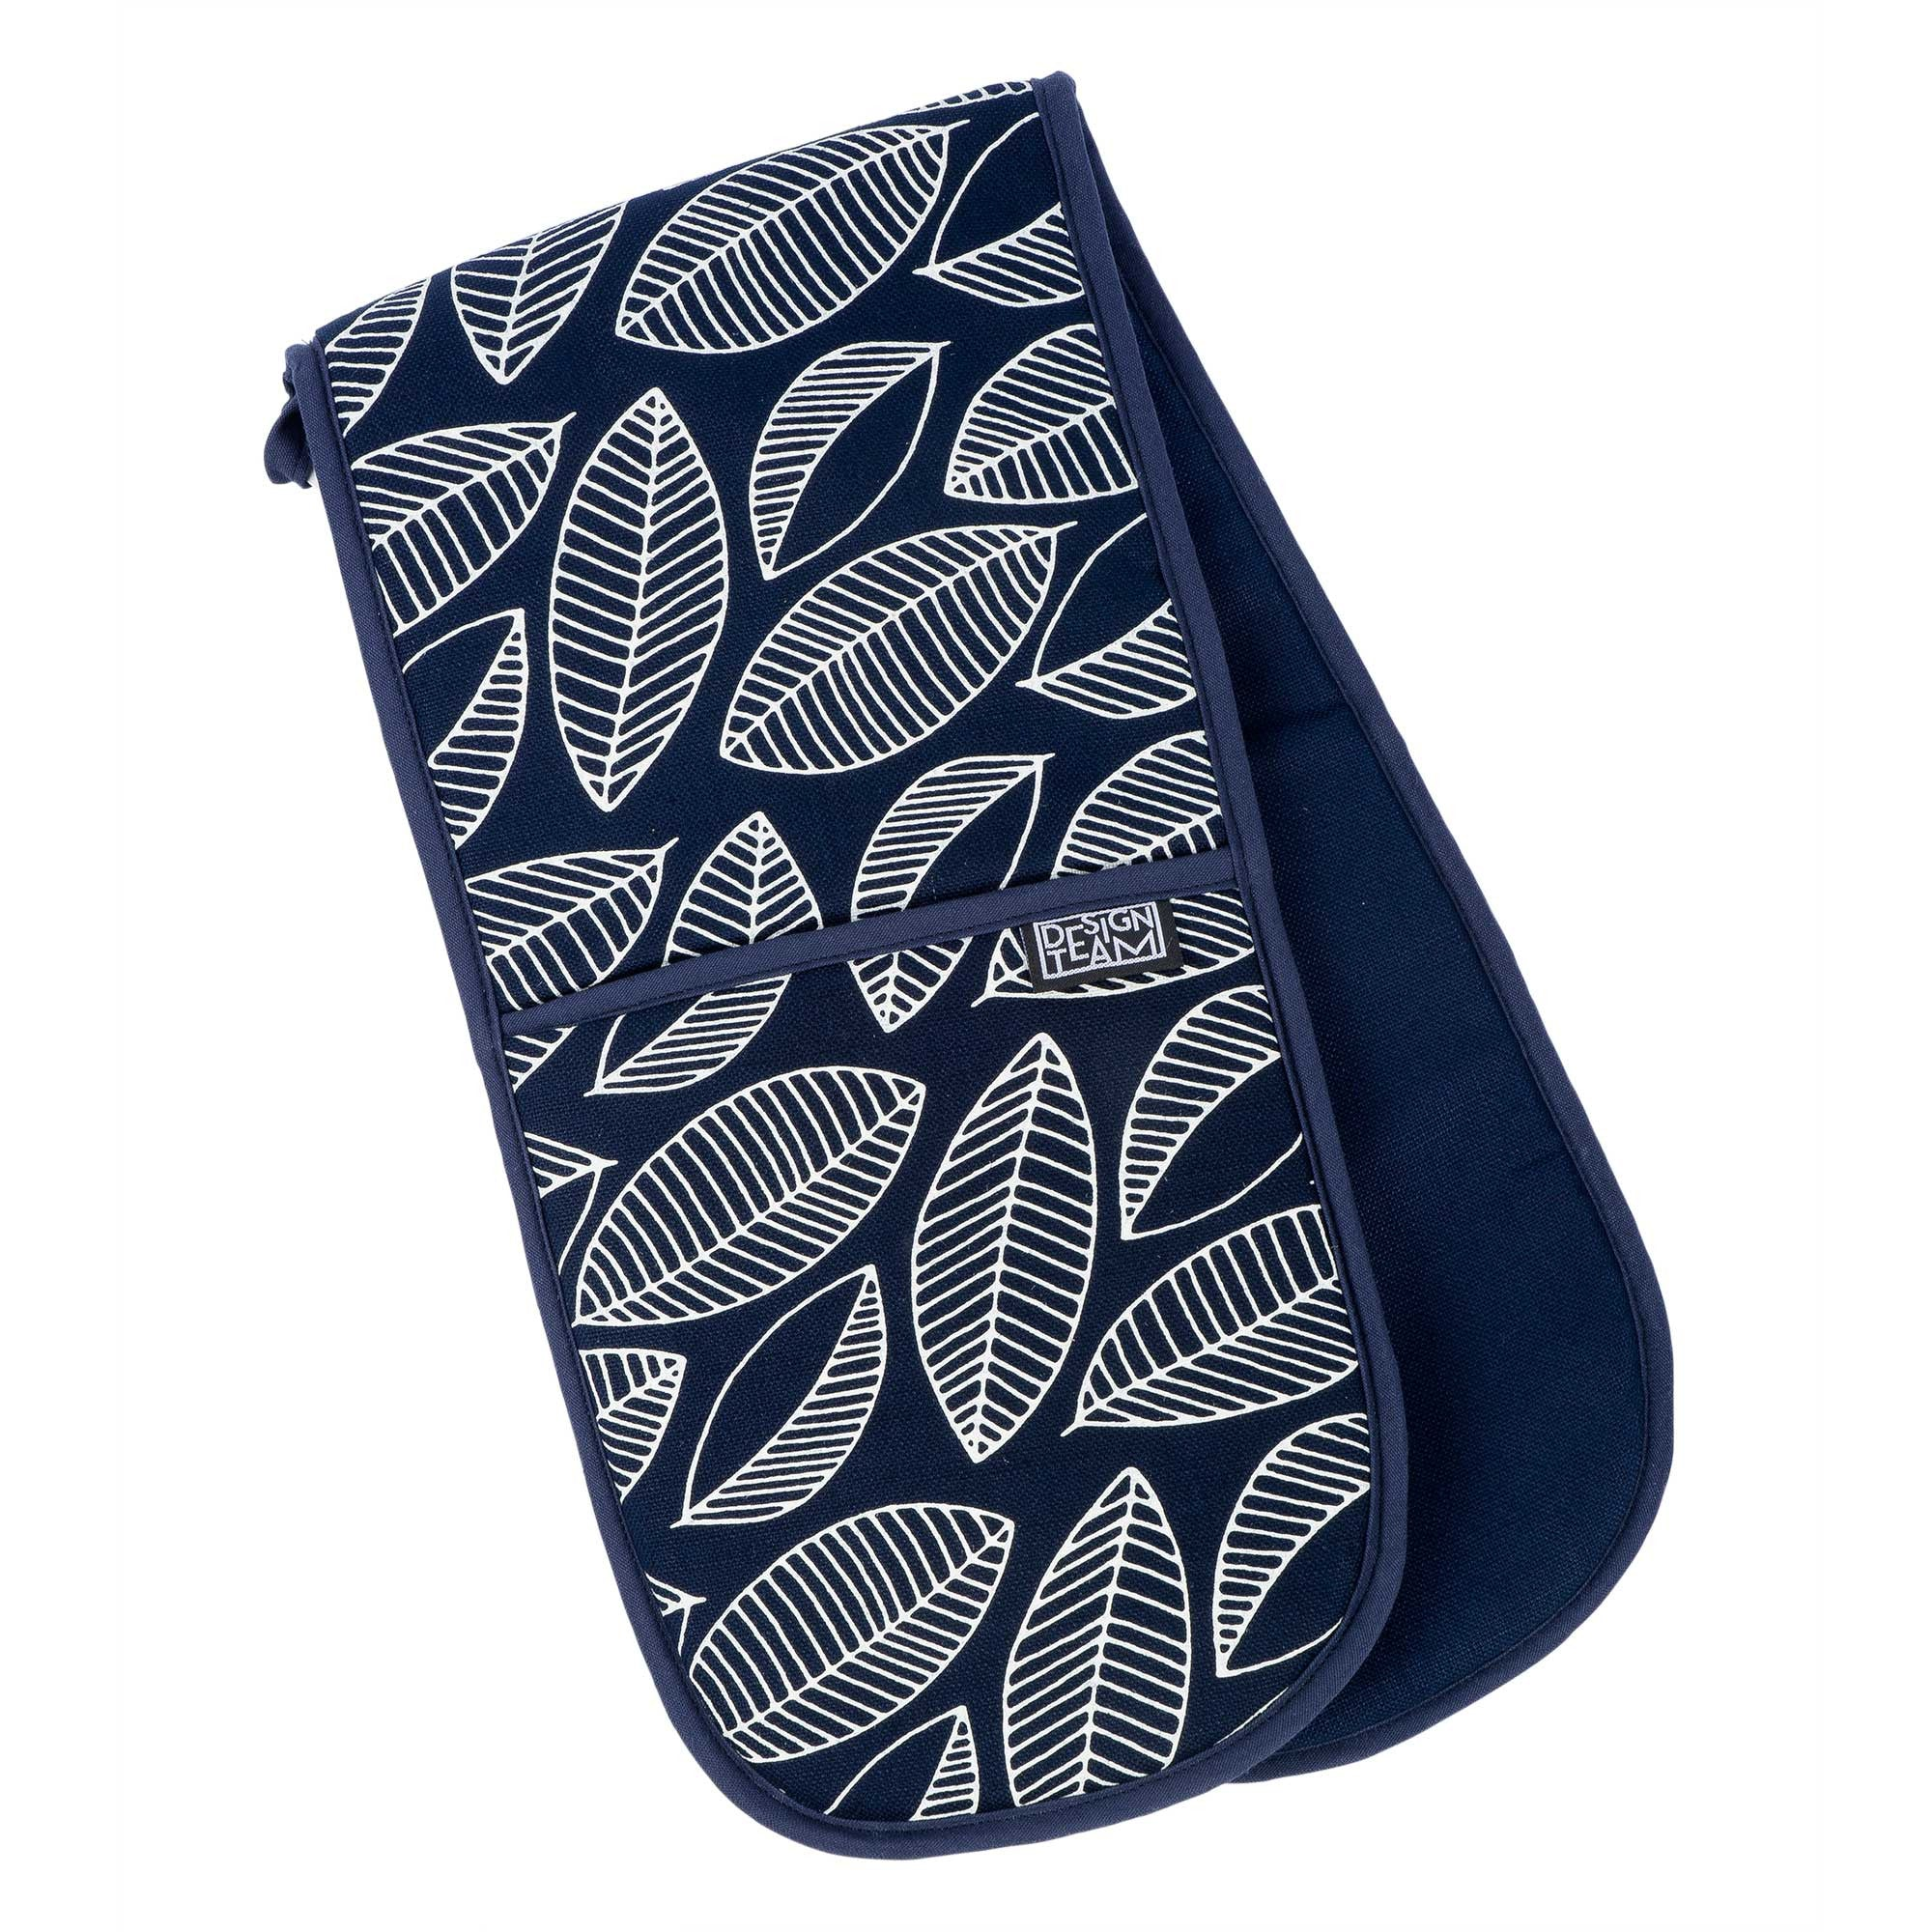 Navy foliage oven gloves